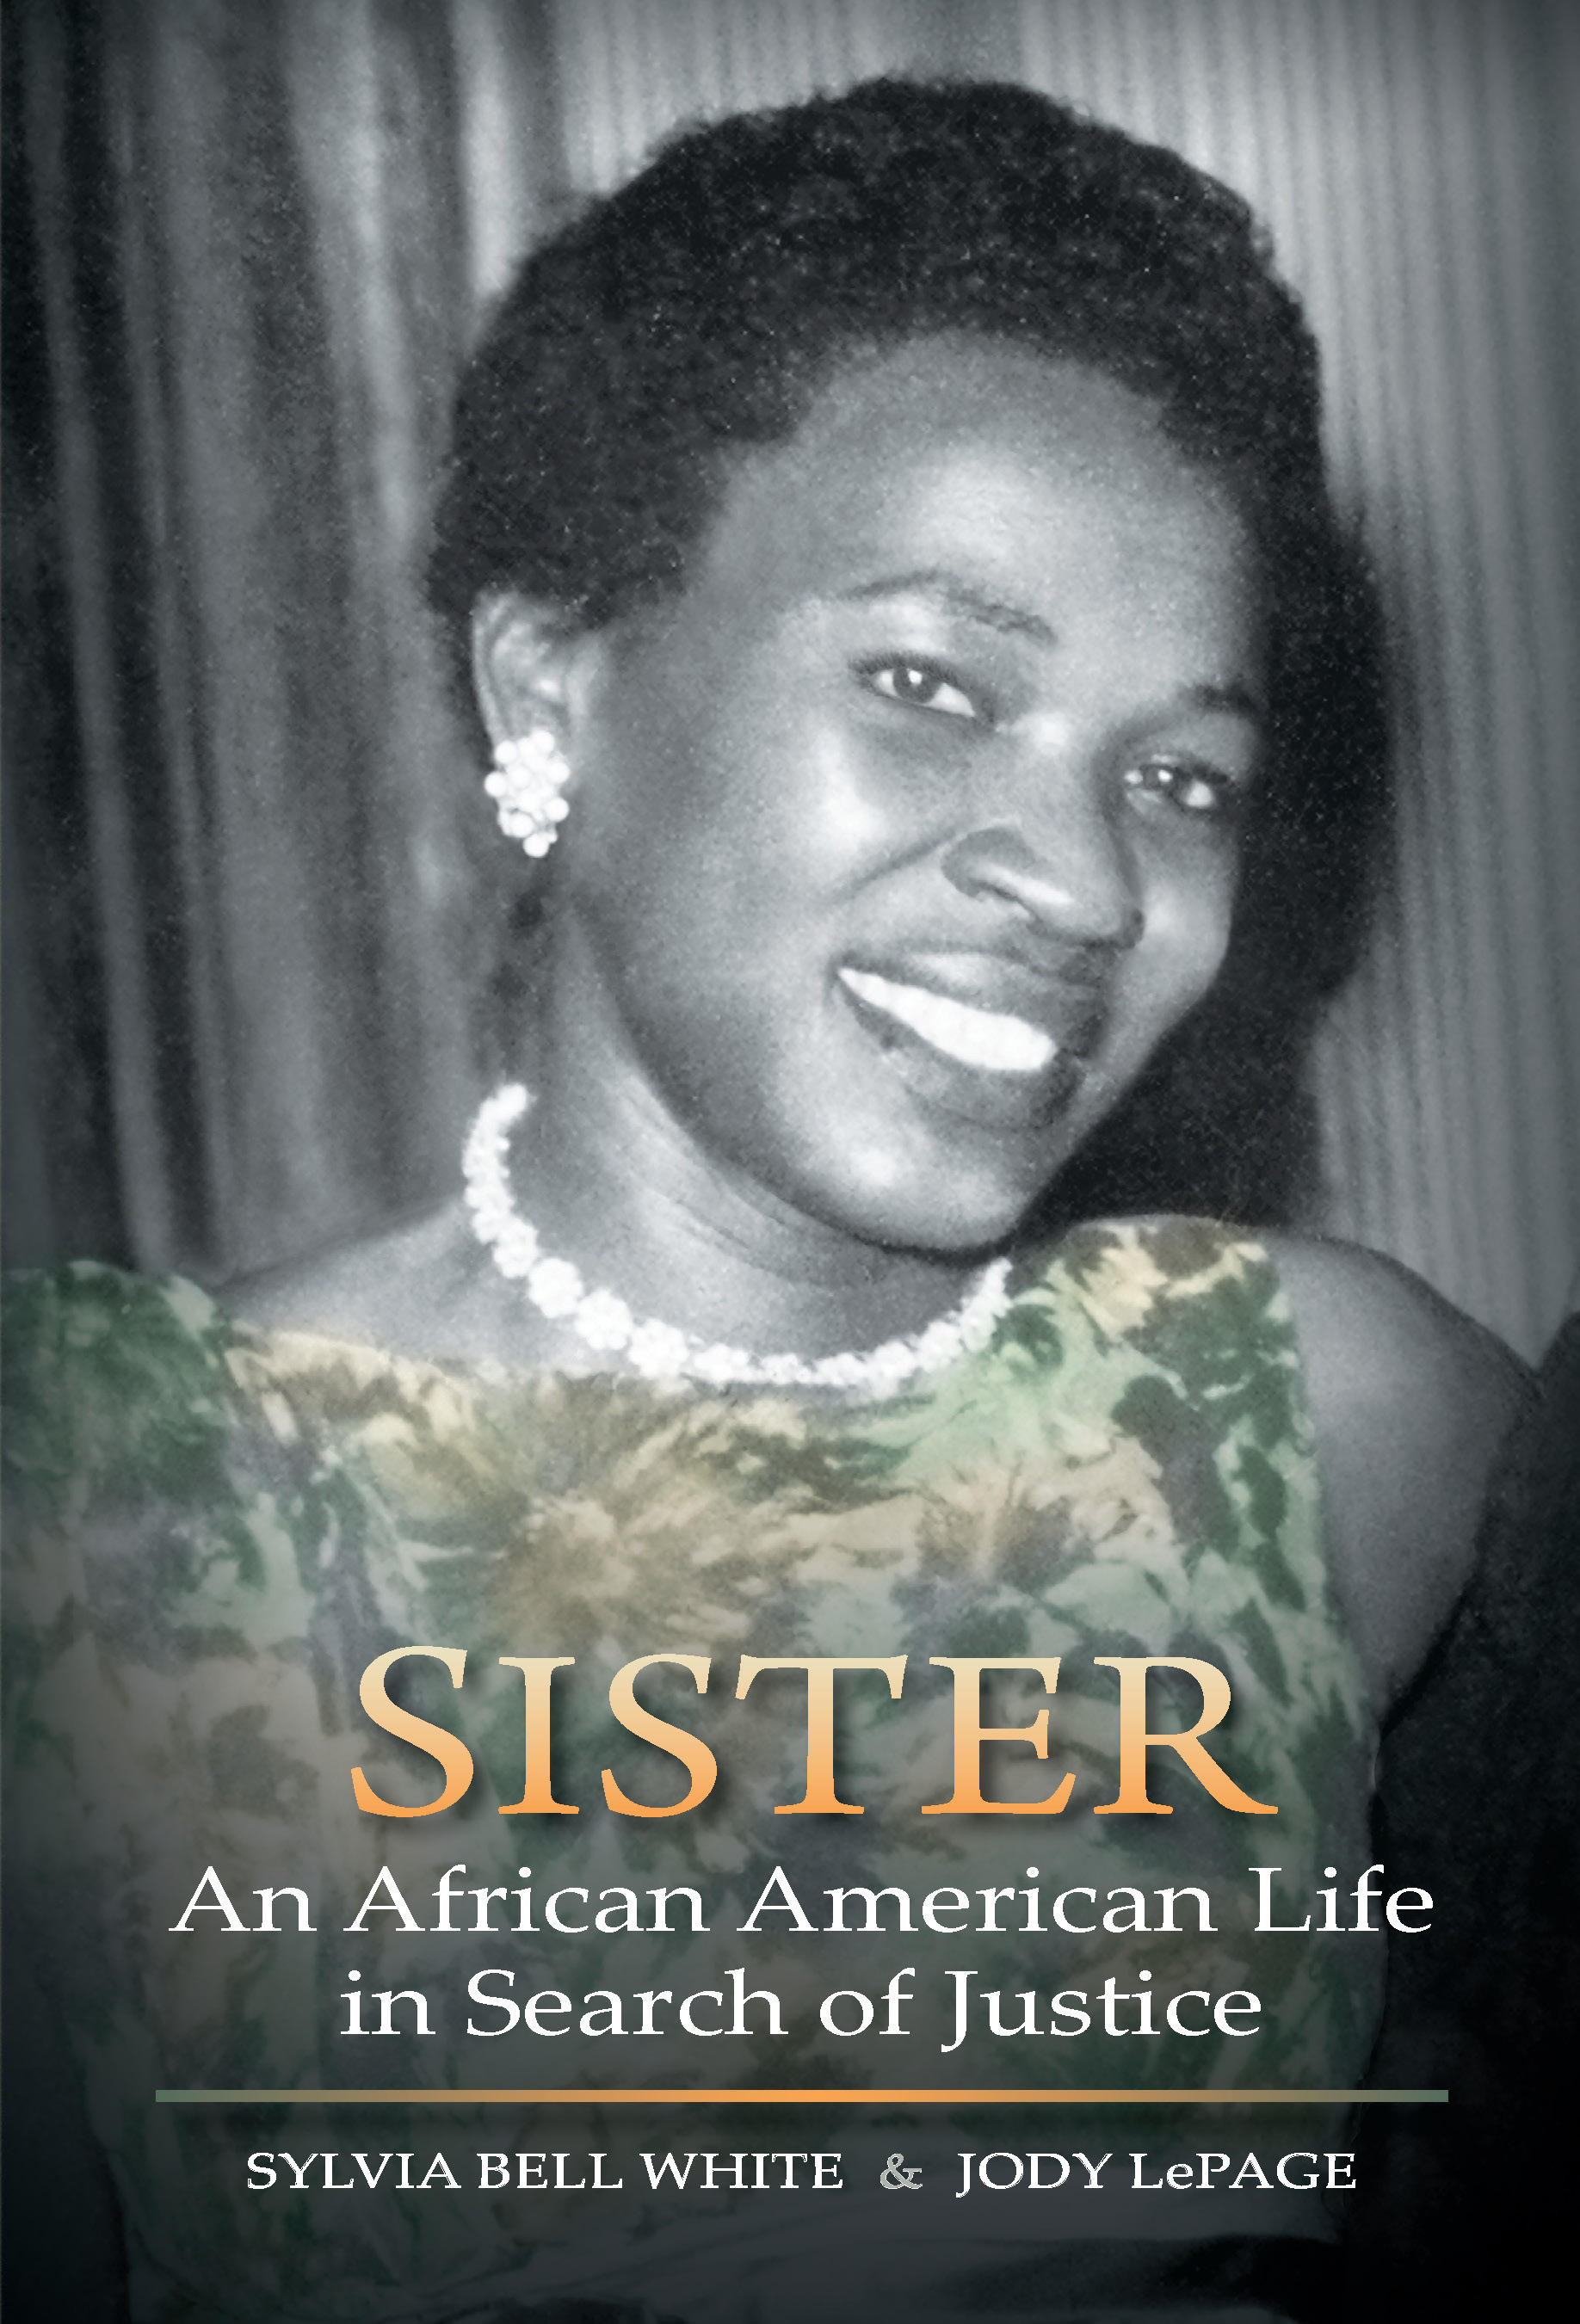 African American Living Room Apartment Decor: Book Describes Family's Loss Shrouded In Discrimination